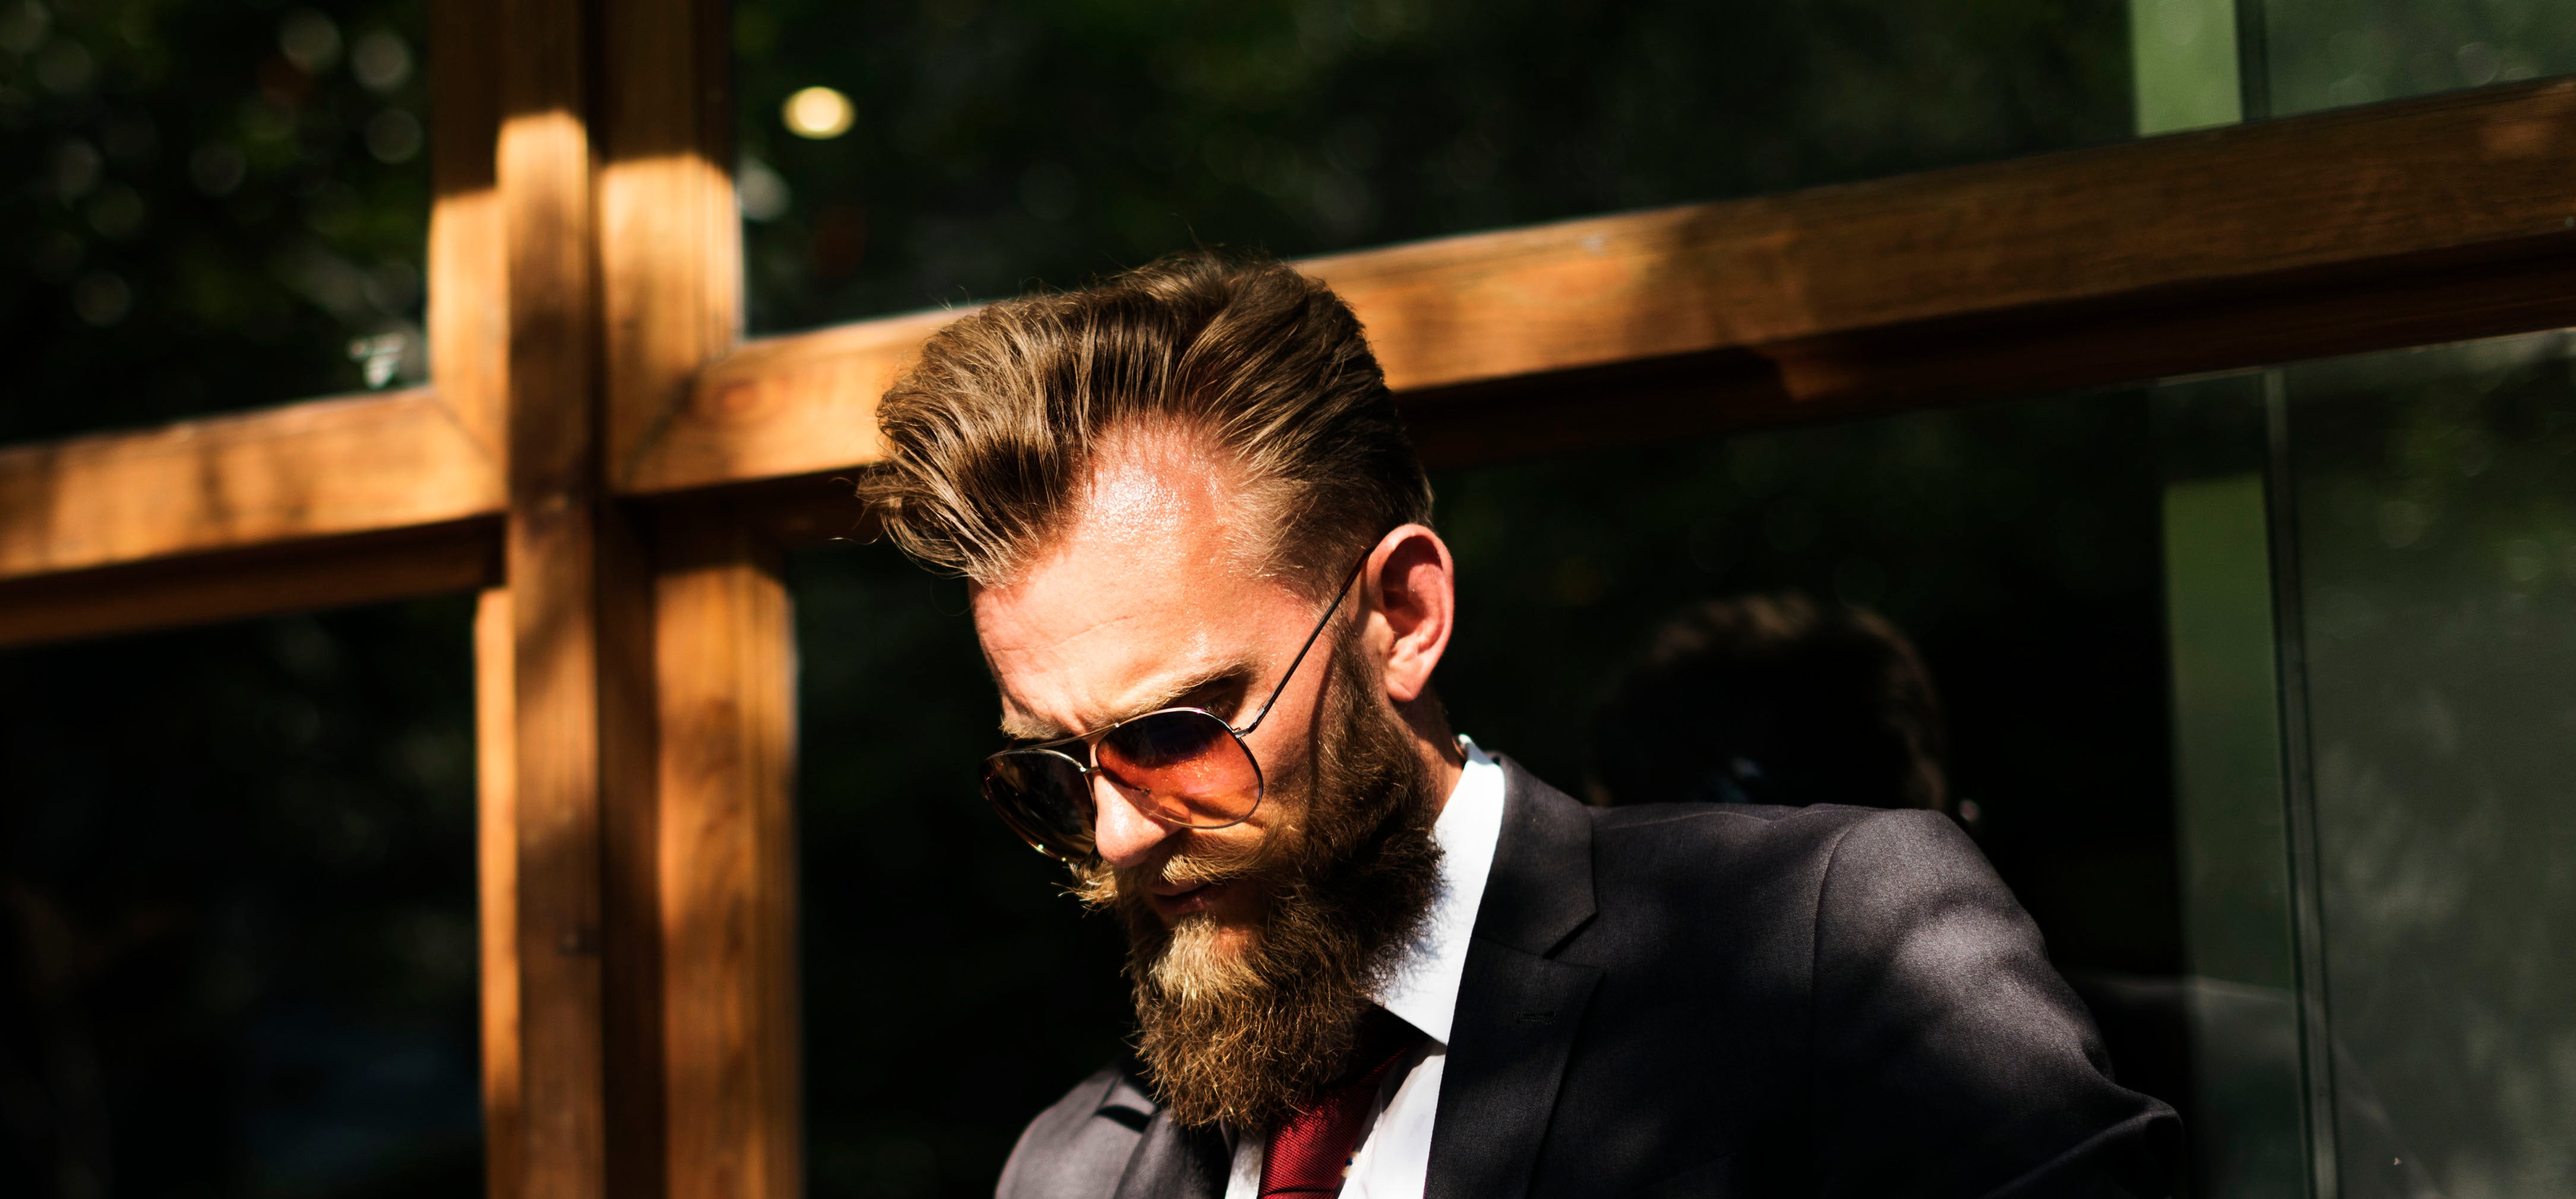 3 Essential Steps To The Beard of Your Dreams